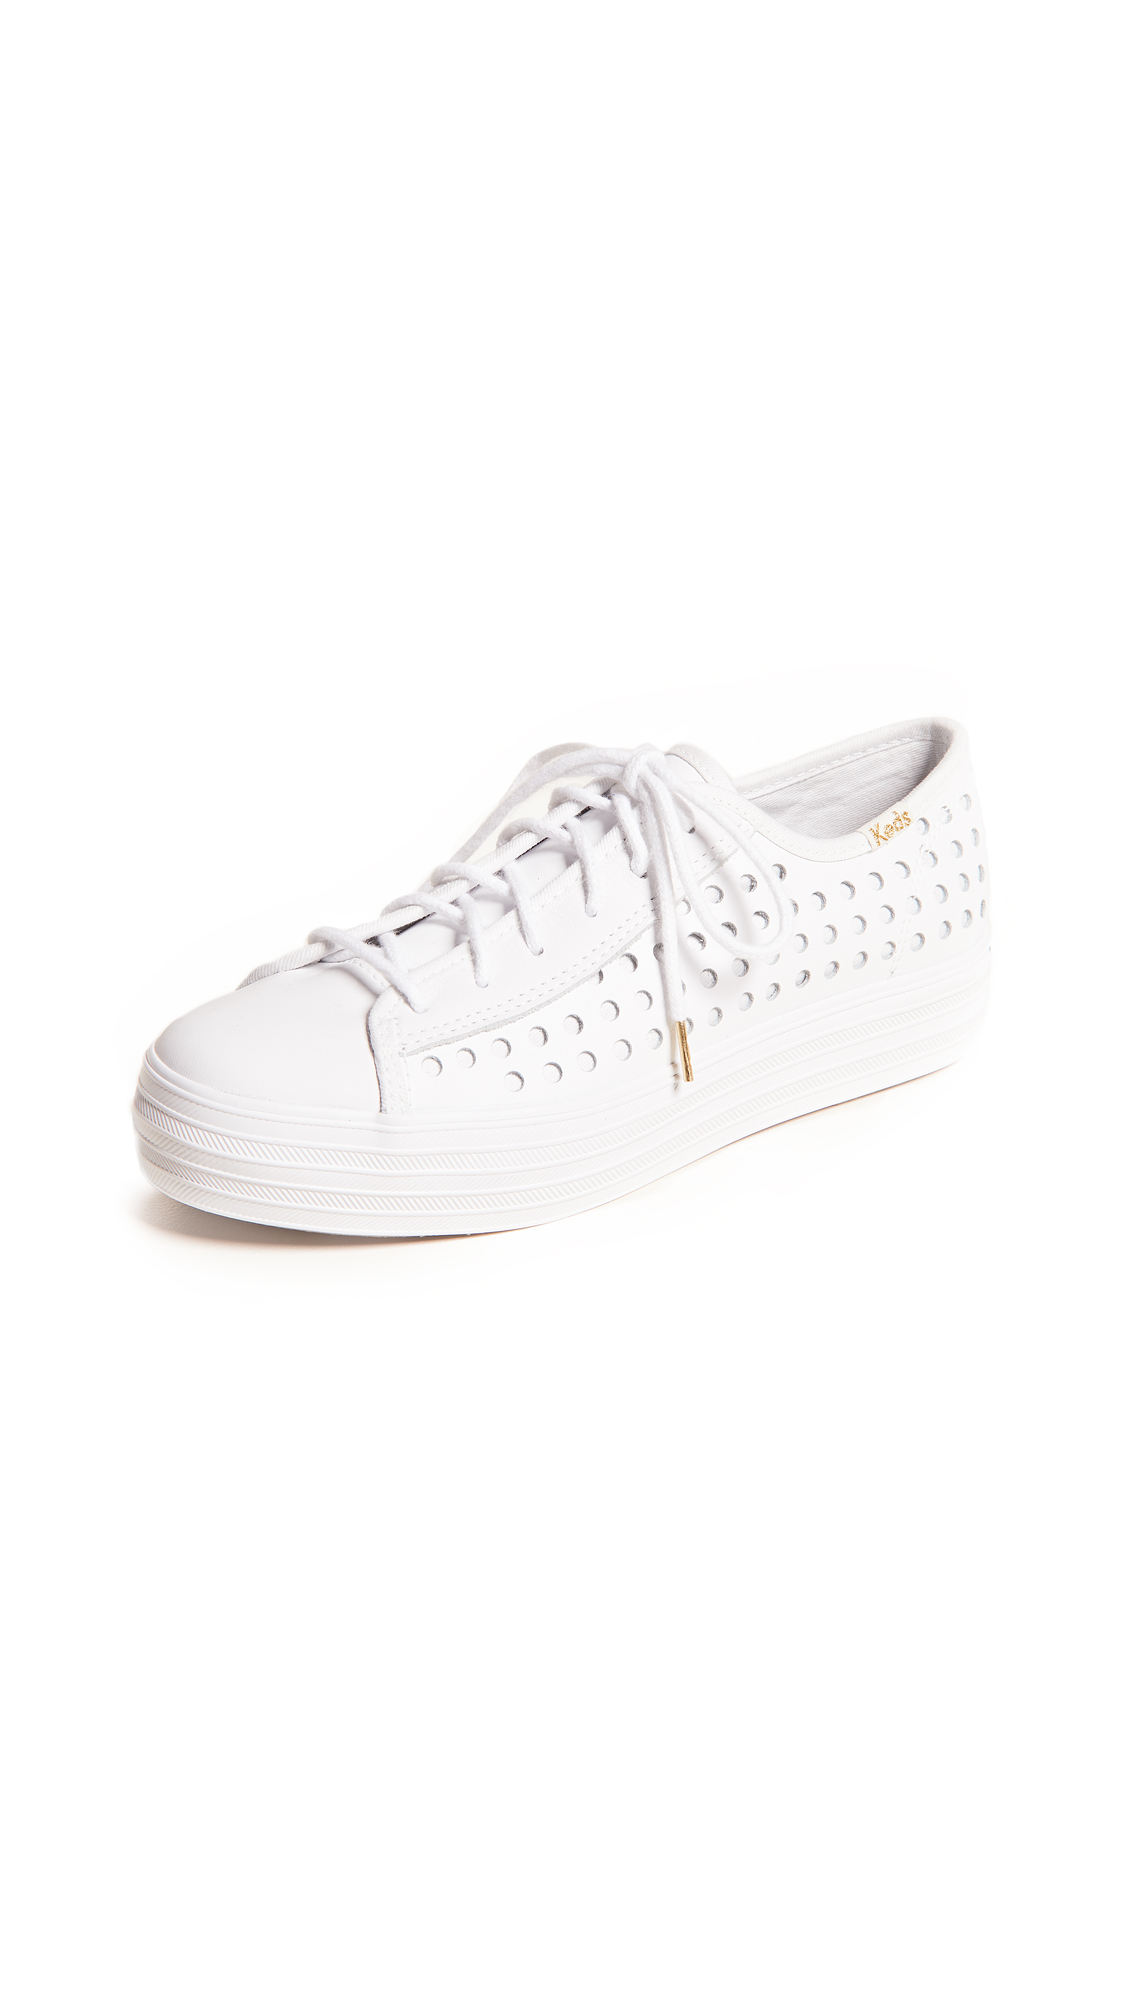 TRIPLE KICK PERFORATED SNEAKERS